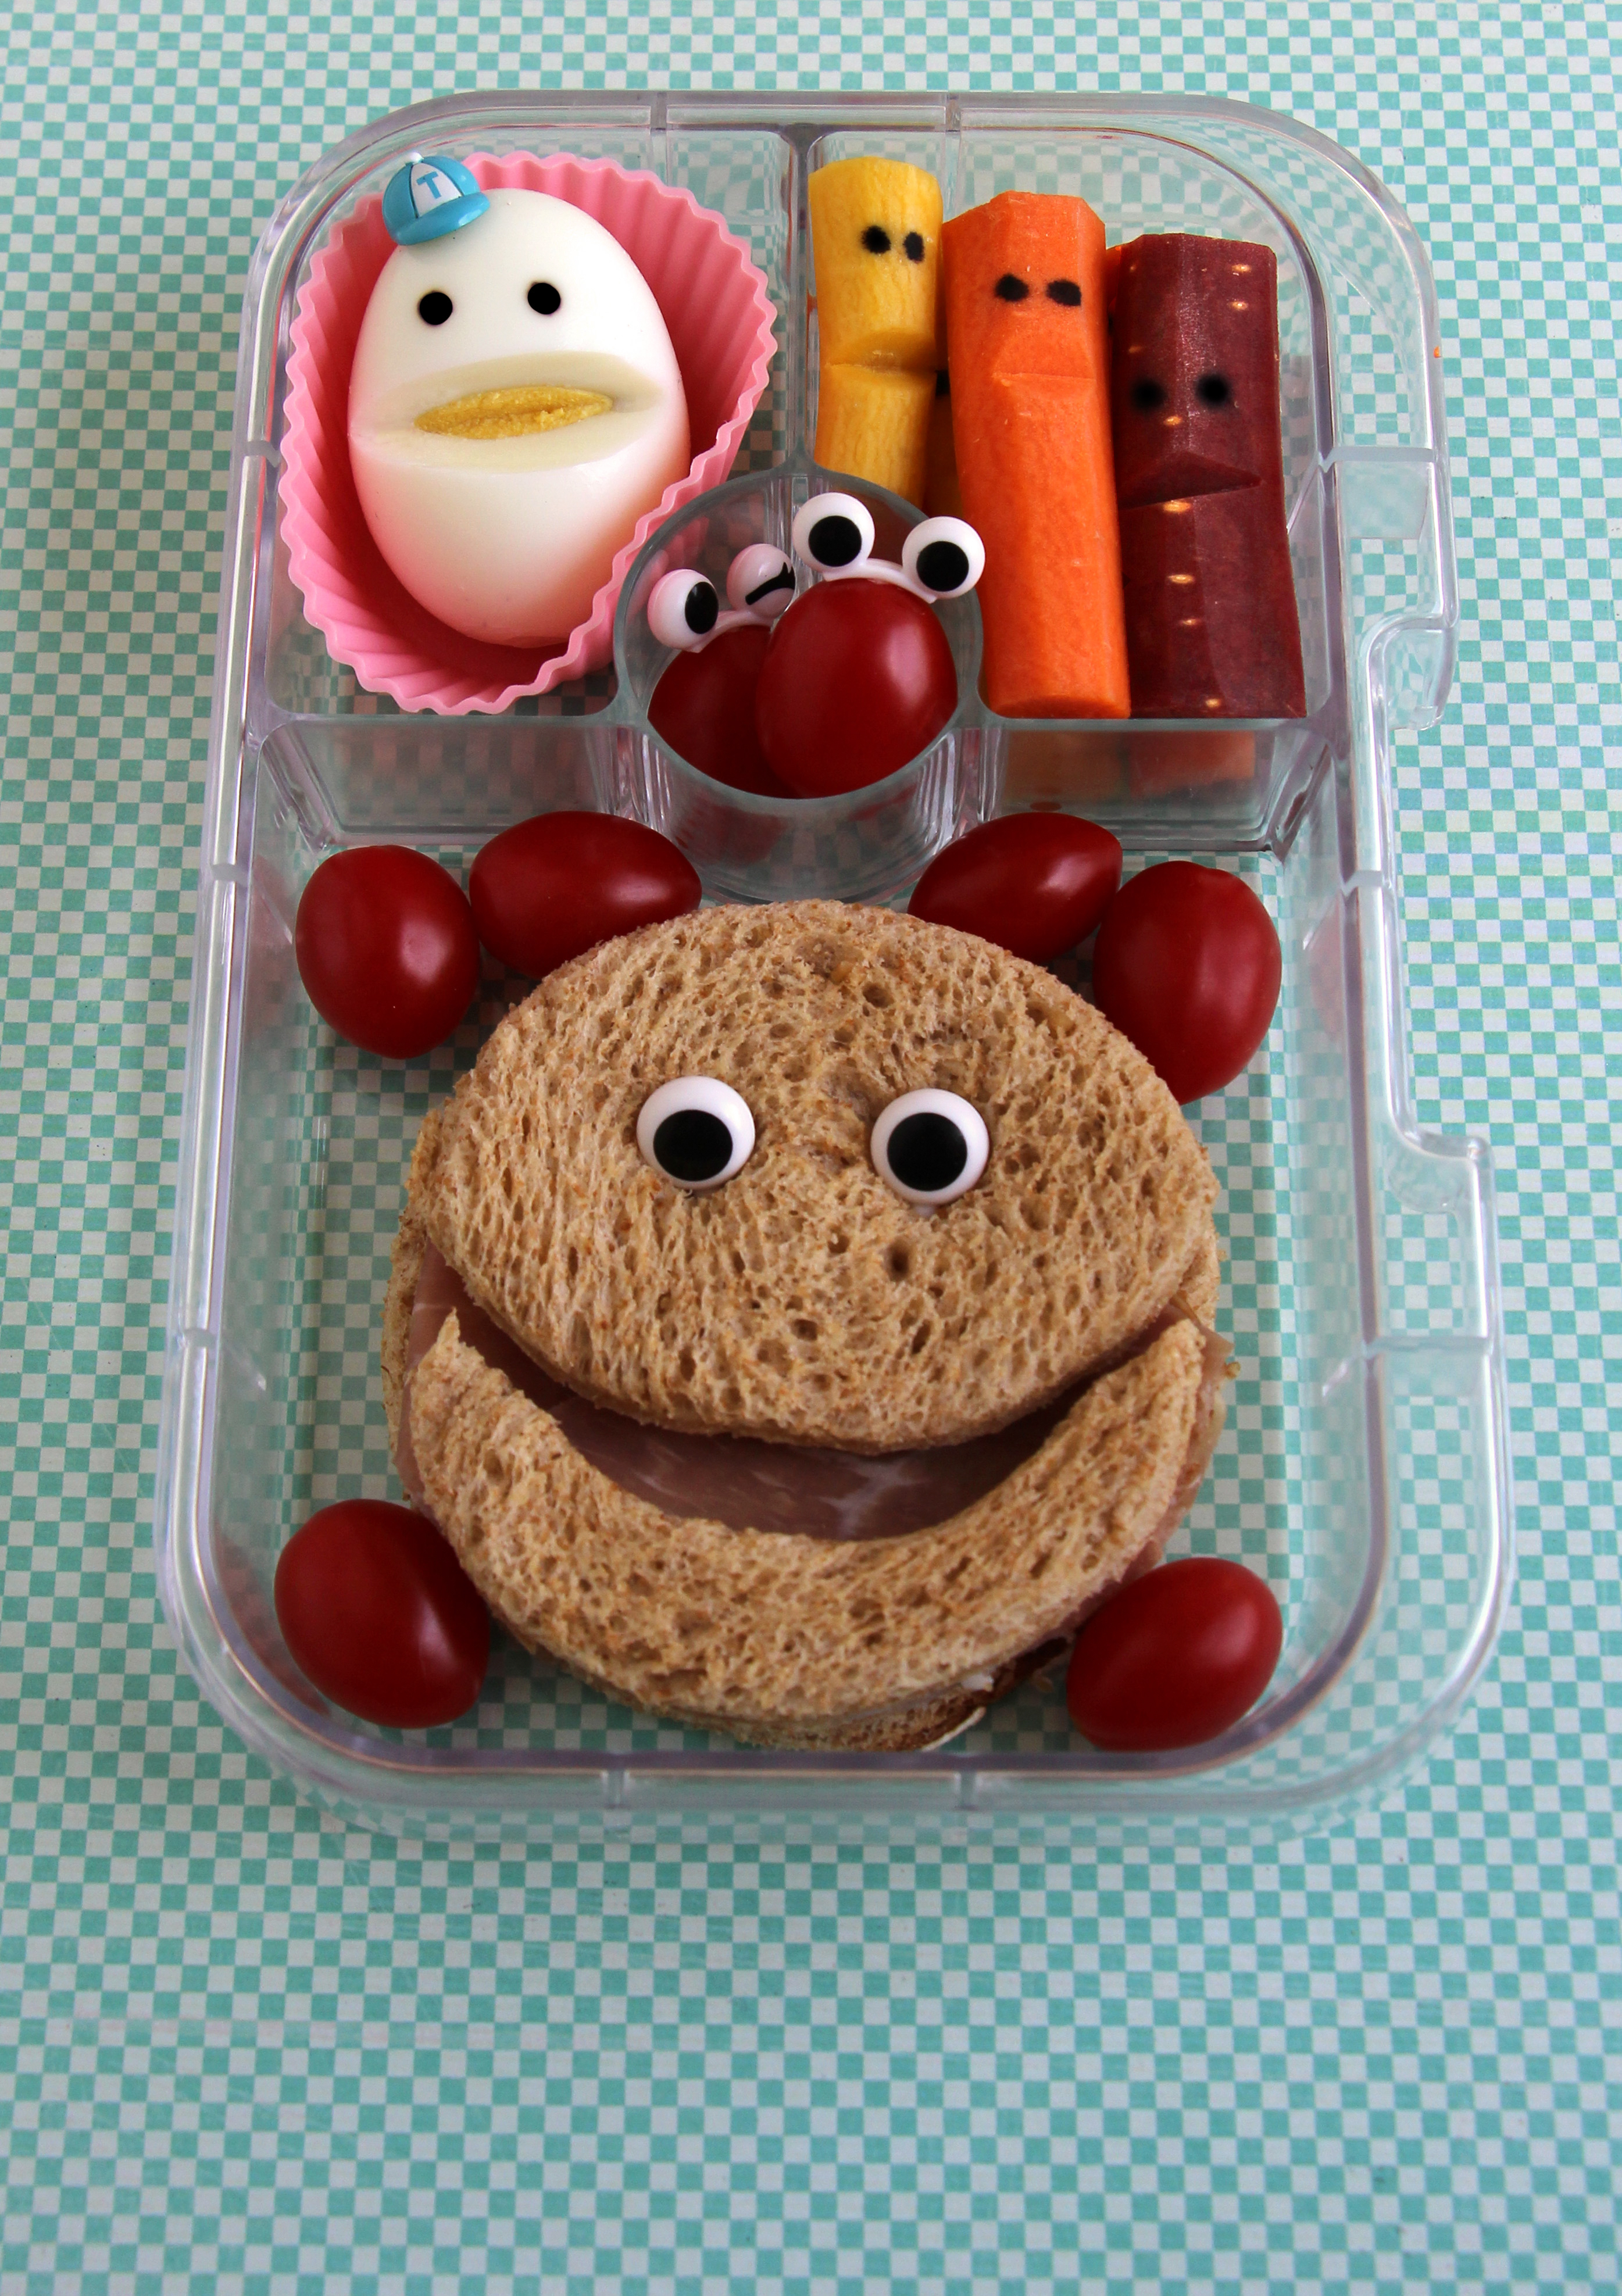 bento box silly faces egg sandwich eyes grapes